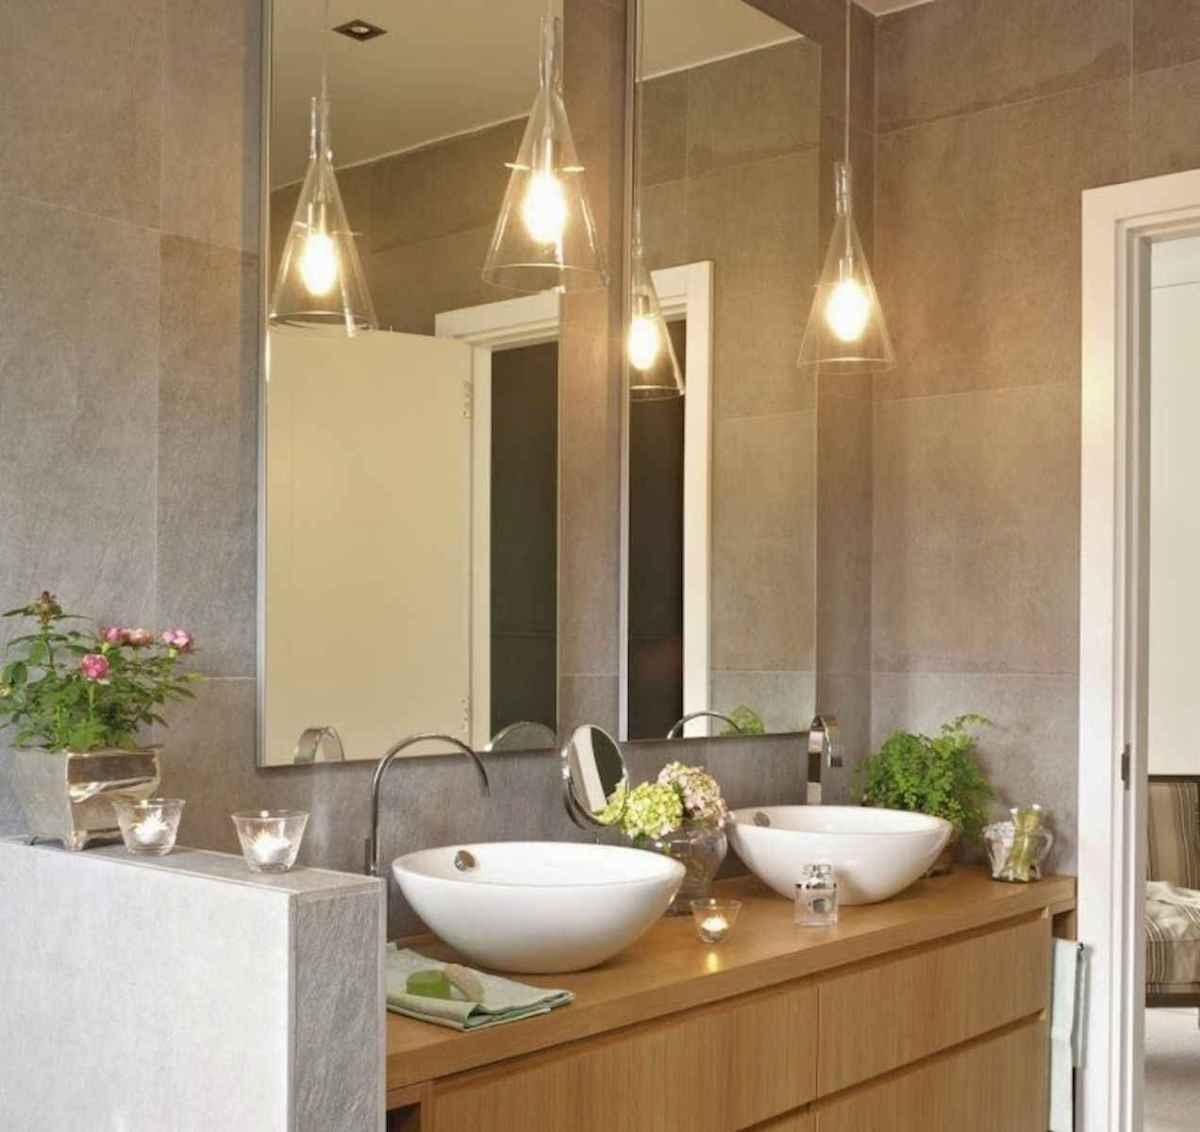 50 Lighting For Farmhouse Bathroom Ideas Decorating And Remodel (36)